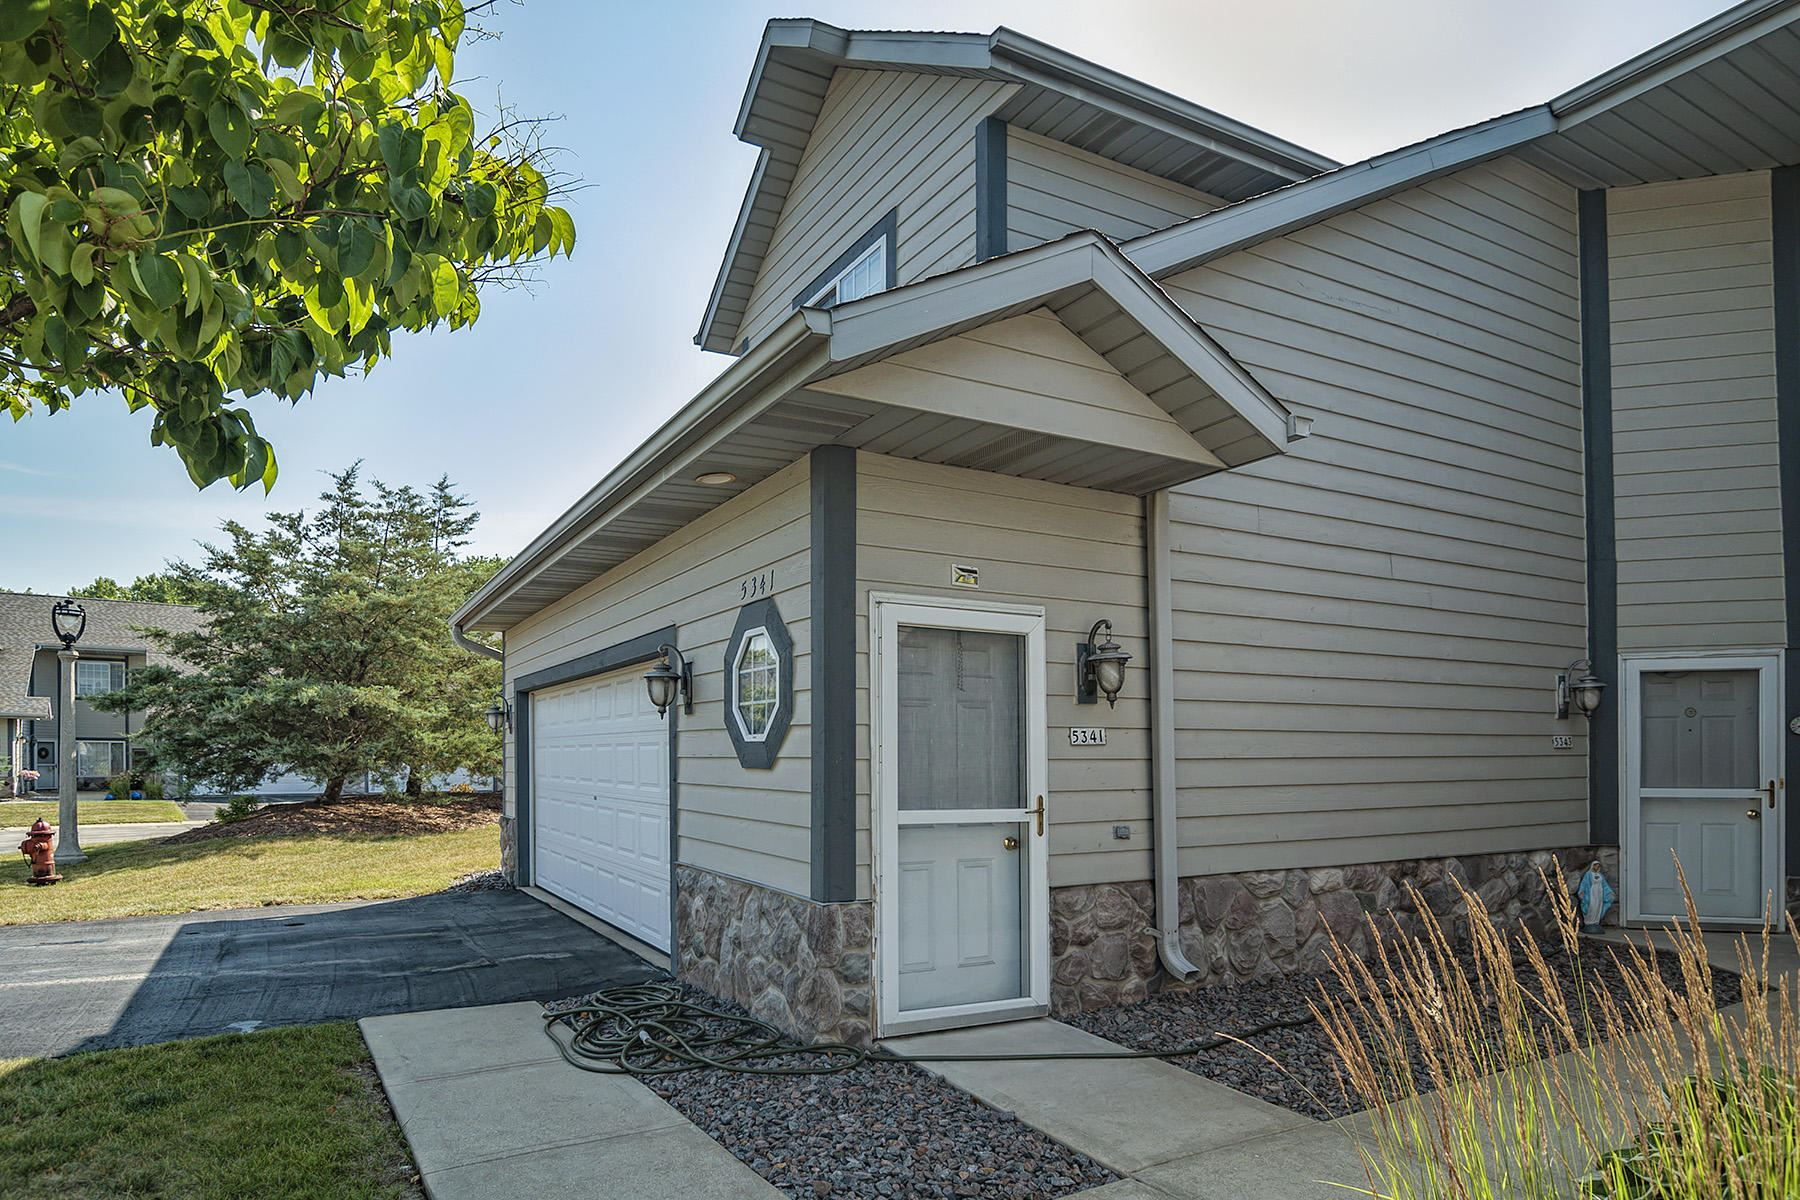 5341 S Hidden Dr, Greenfield, WI 53221 - #: 1757874